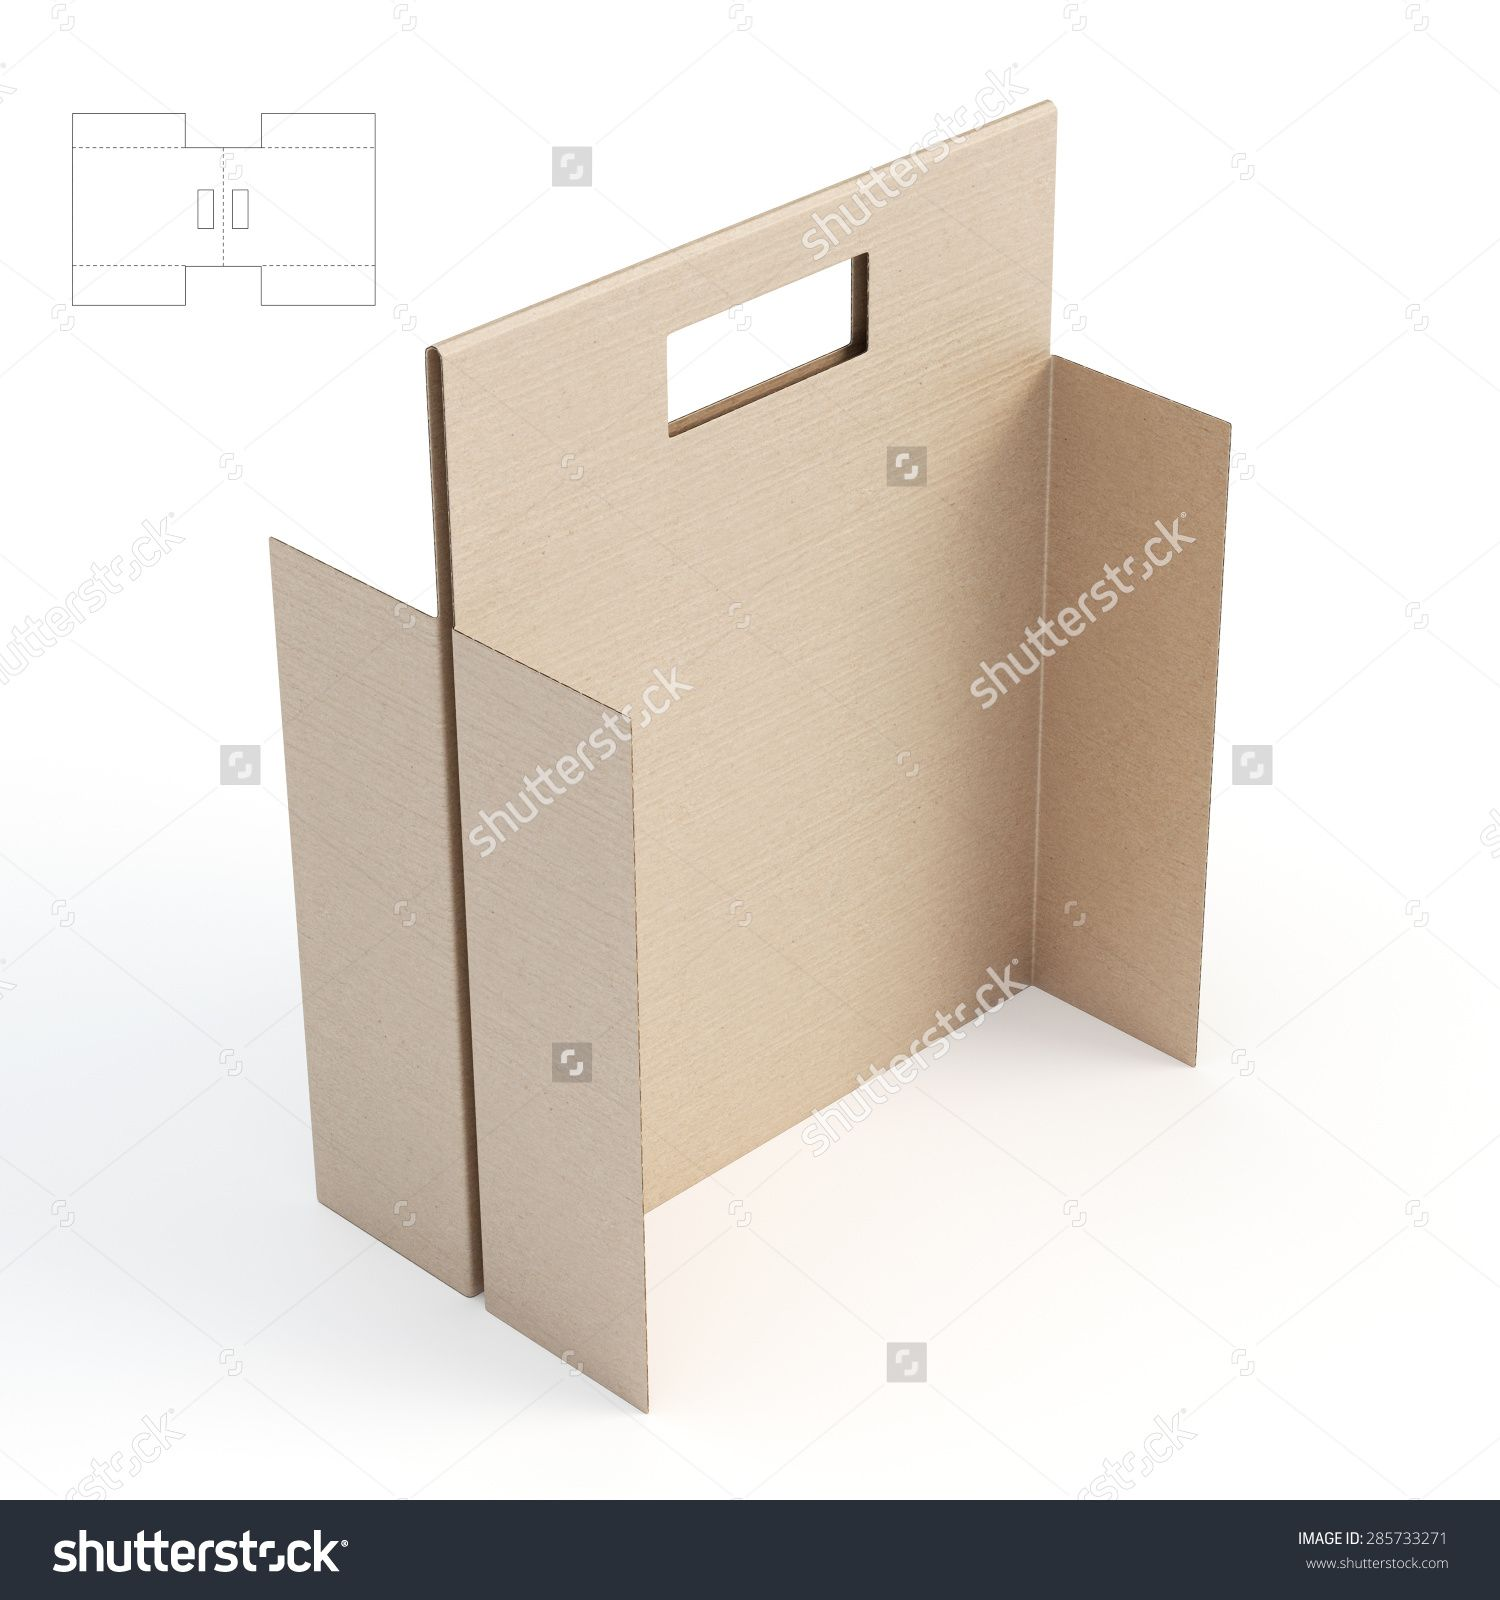 Divider With Handle Packaging And Die Cut Template Stock Photo ...